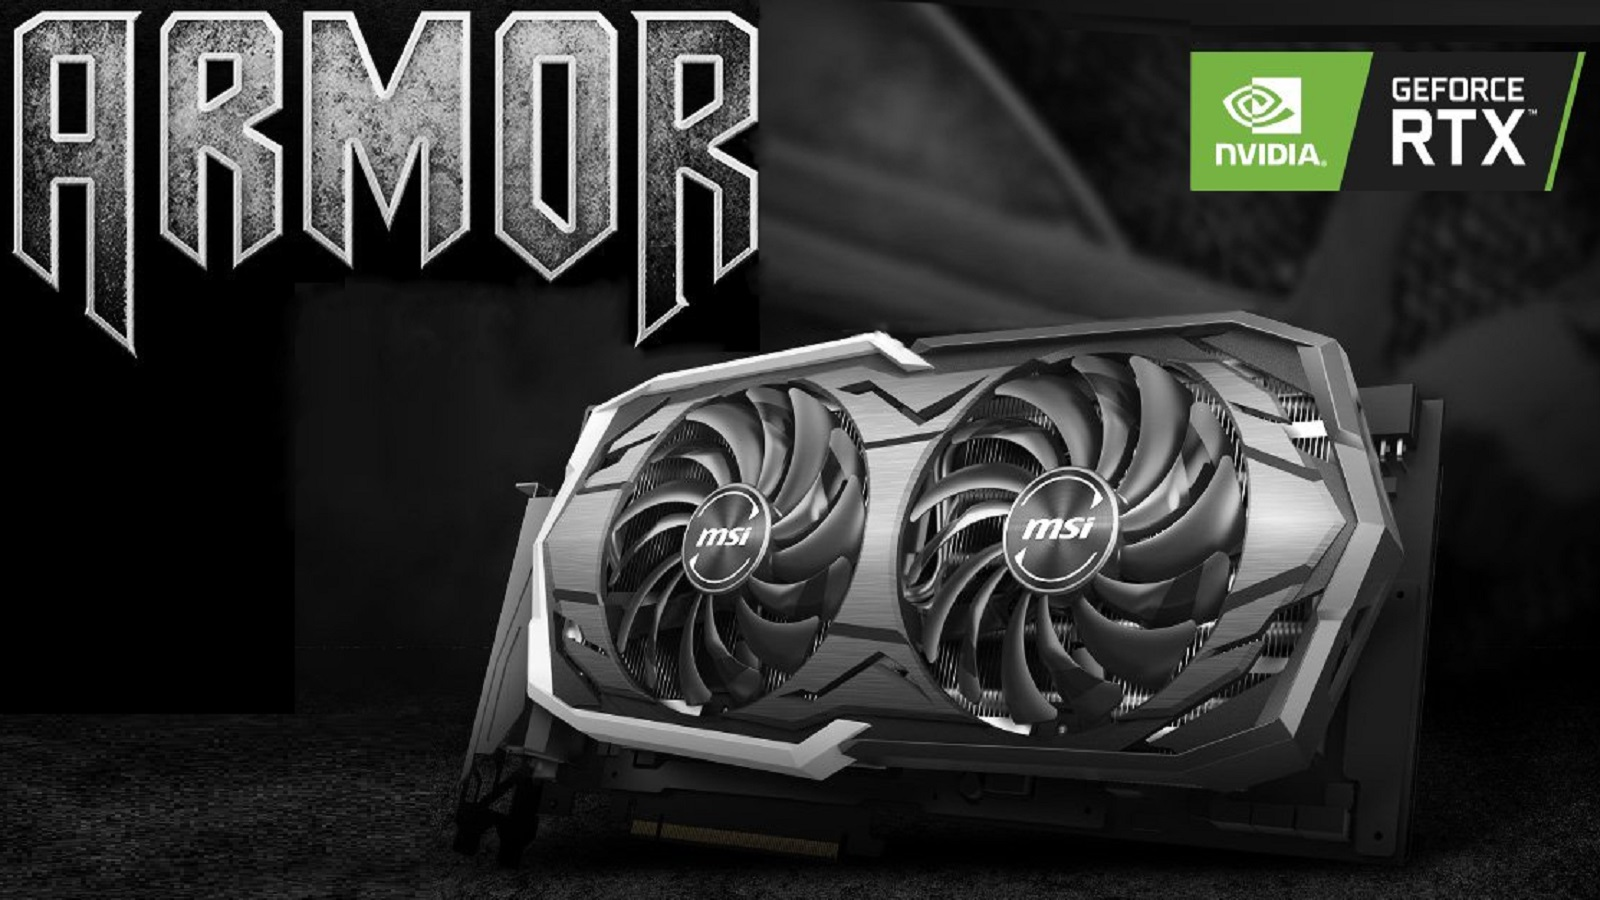 Обзор и тест видеокарты MSI GeForce RTX 2070 Armor 8G